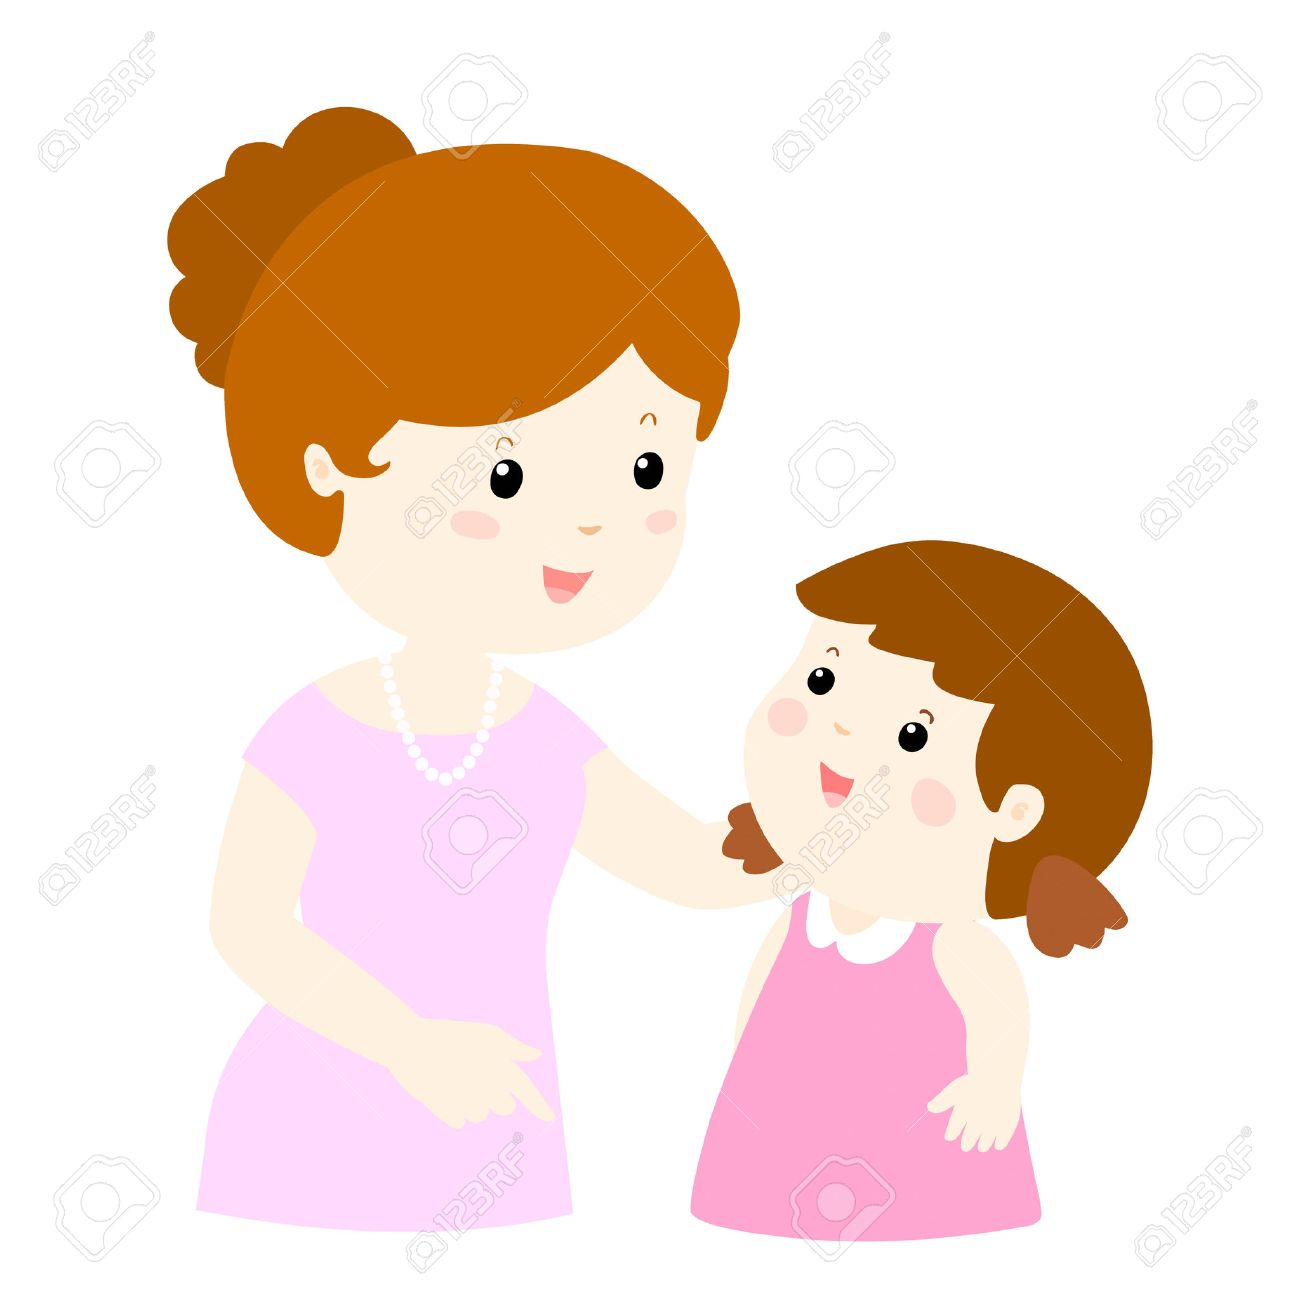 mom talk to her daughter gently vector illustration.